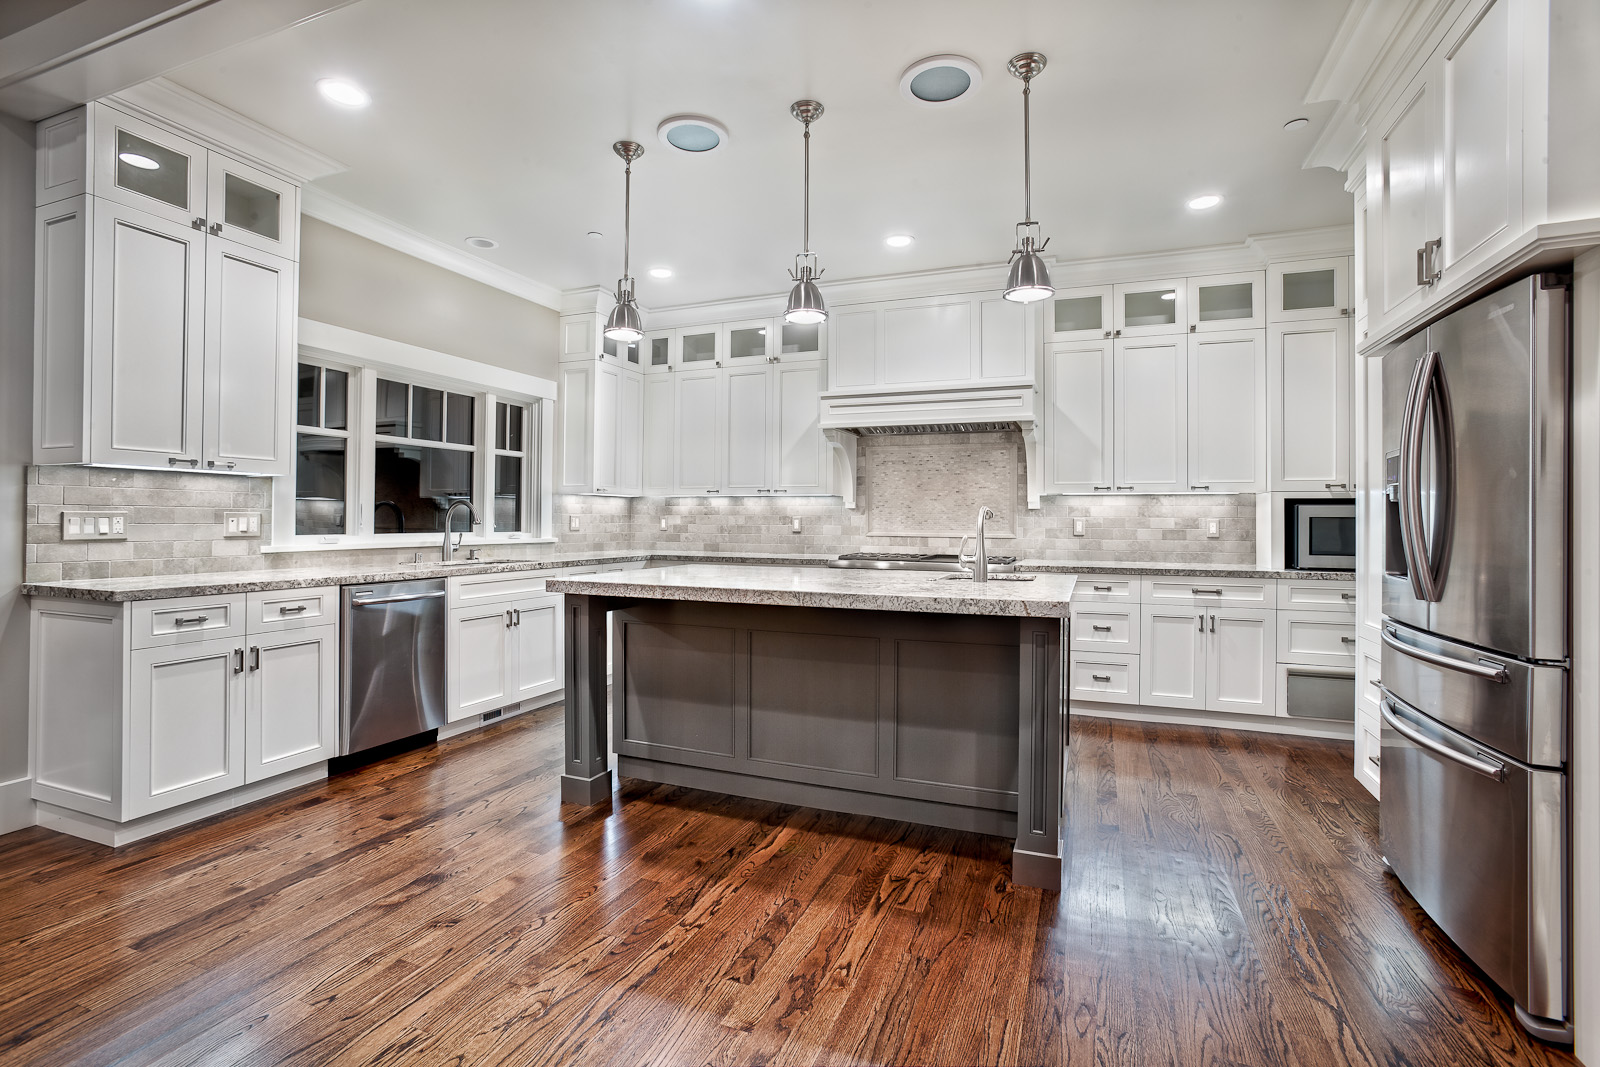 making your kitchen remodel easier with a kitchen cabinet supplier